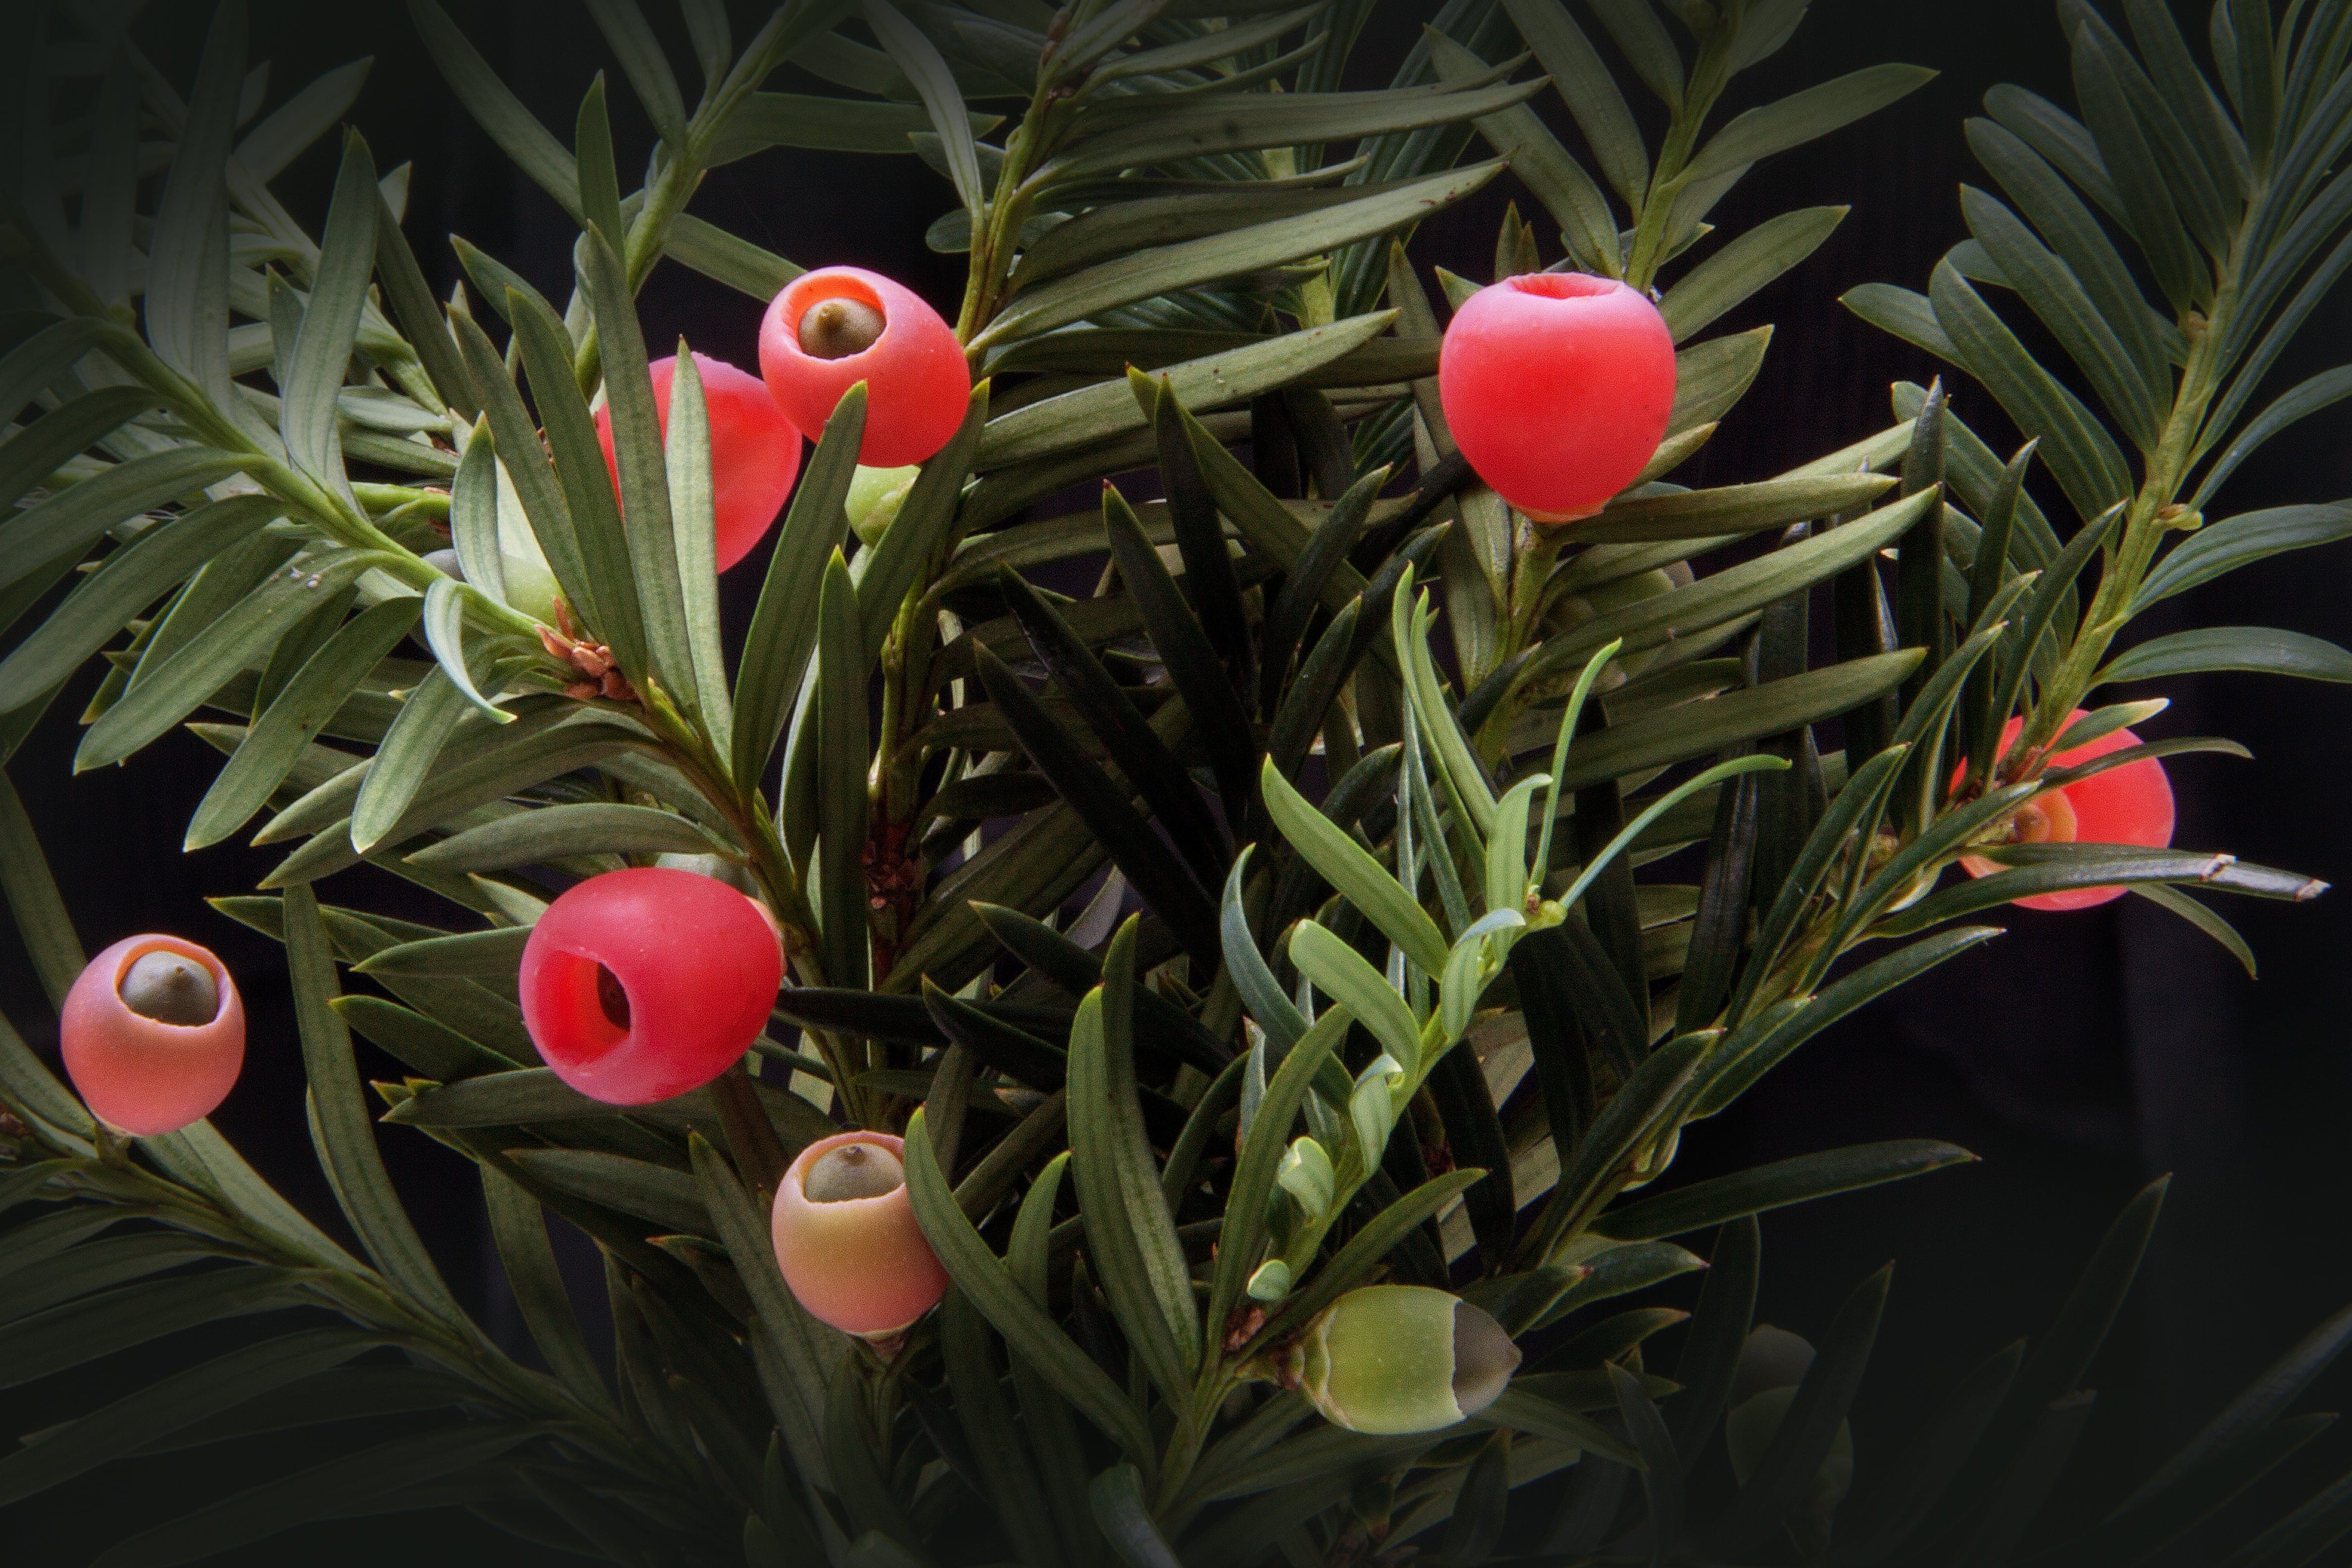 Red Fruit on Green Plants